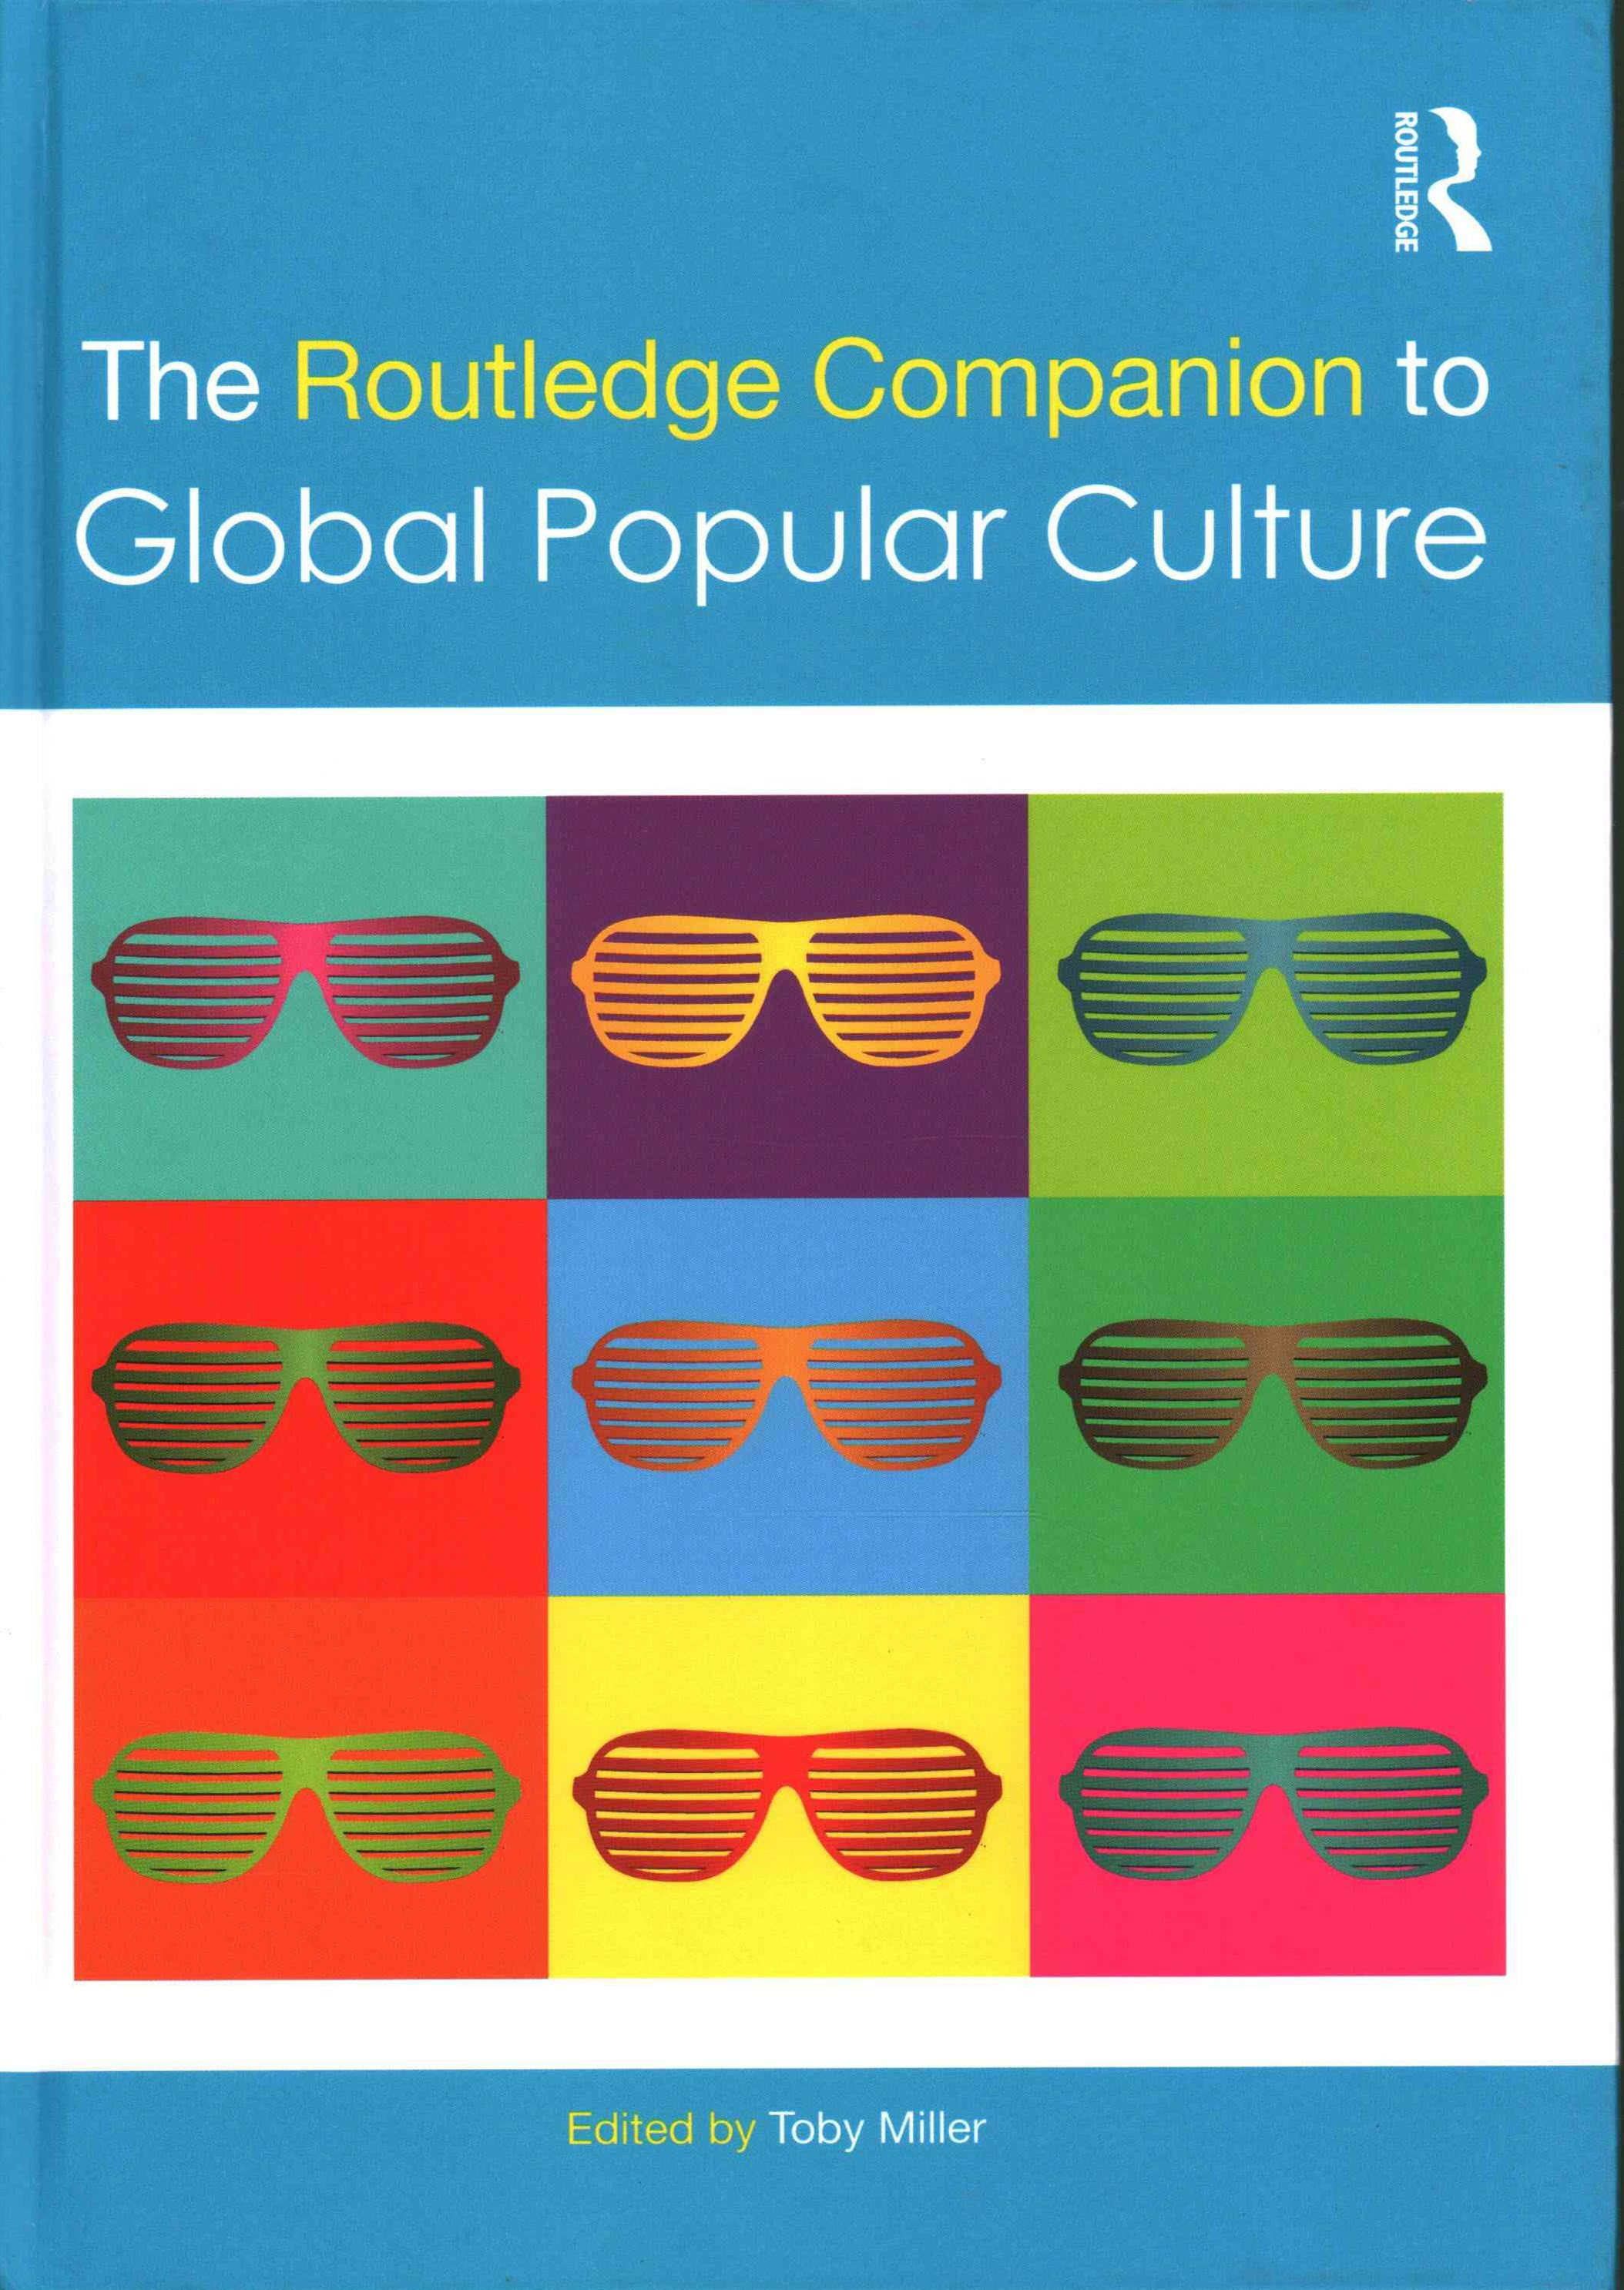 Routledge Companion to Global Popular Culture